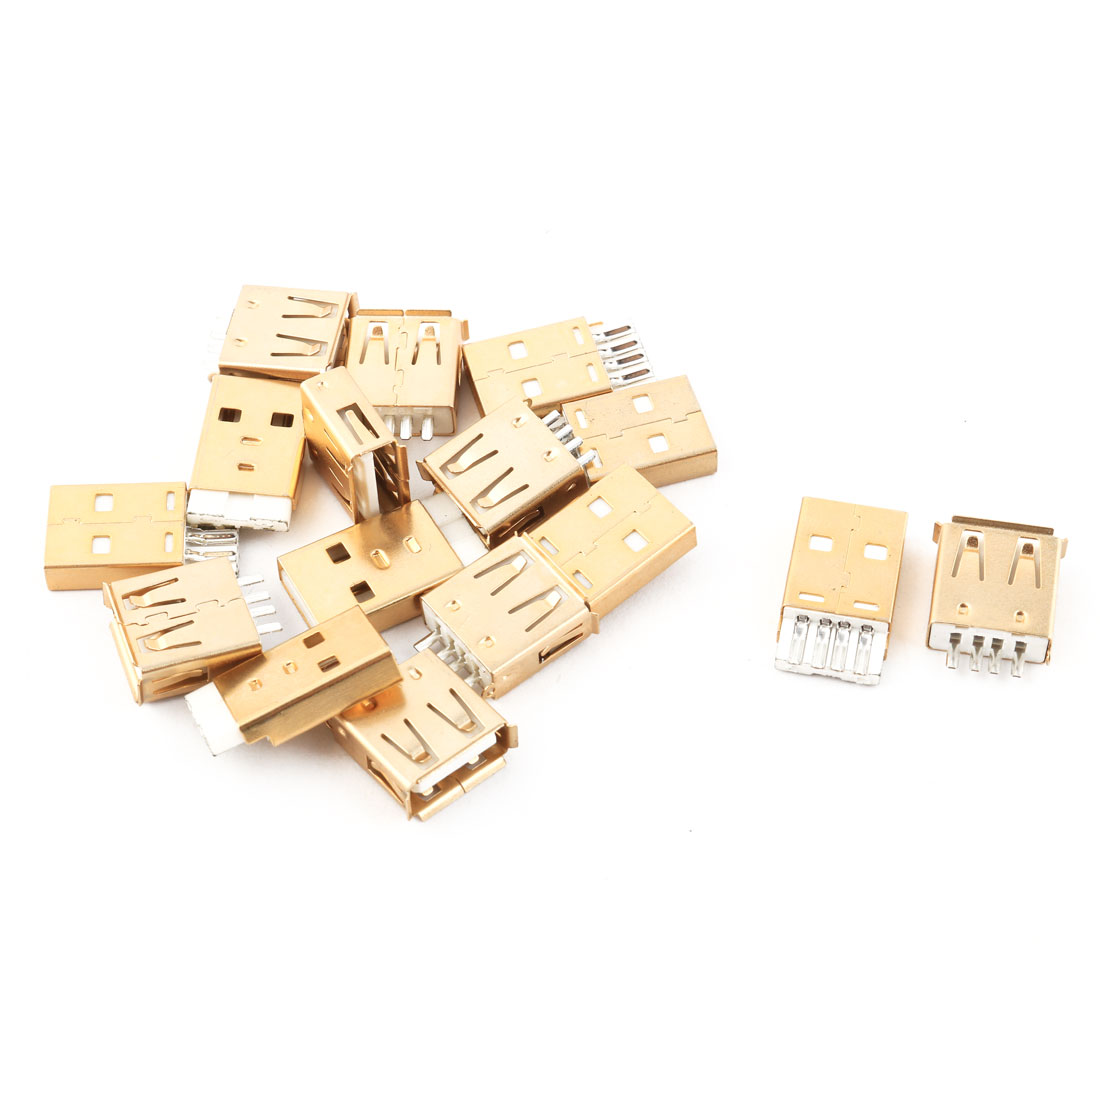 USB 2.0 Type A Solder Female 4 Pins Male Connector Socket Gold Tone 8 Pairs